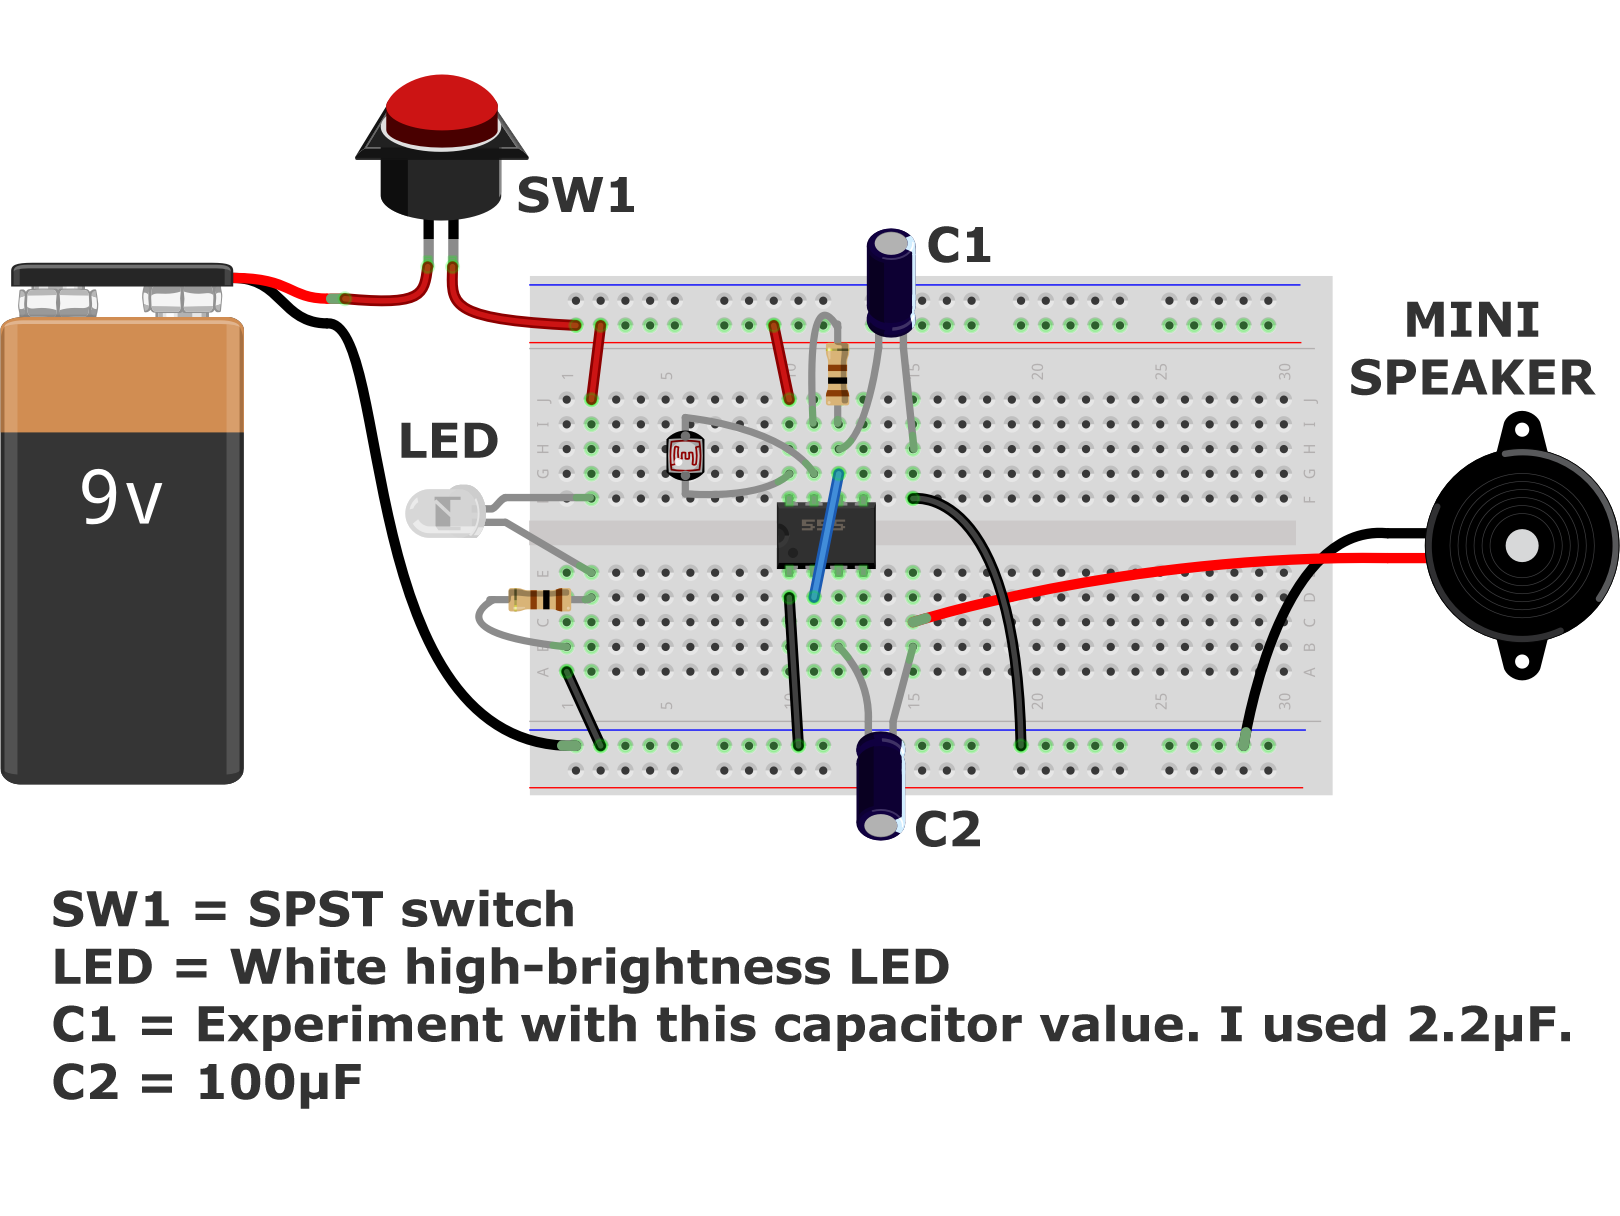 Light2Sound LDR Synth | 555 timer | Pinterest